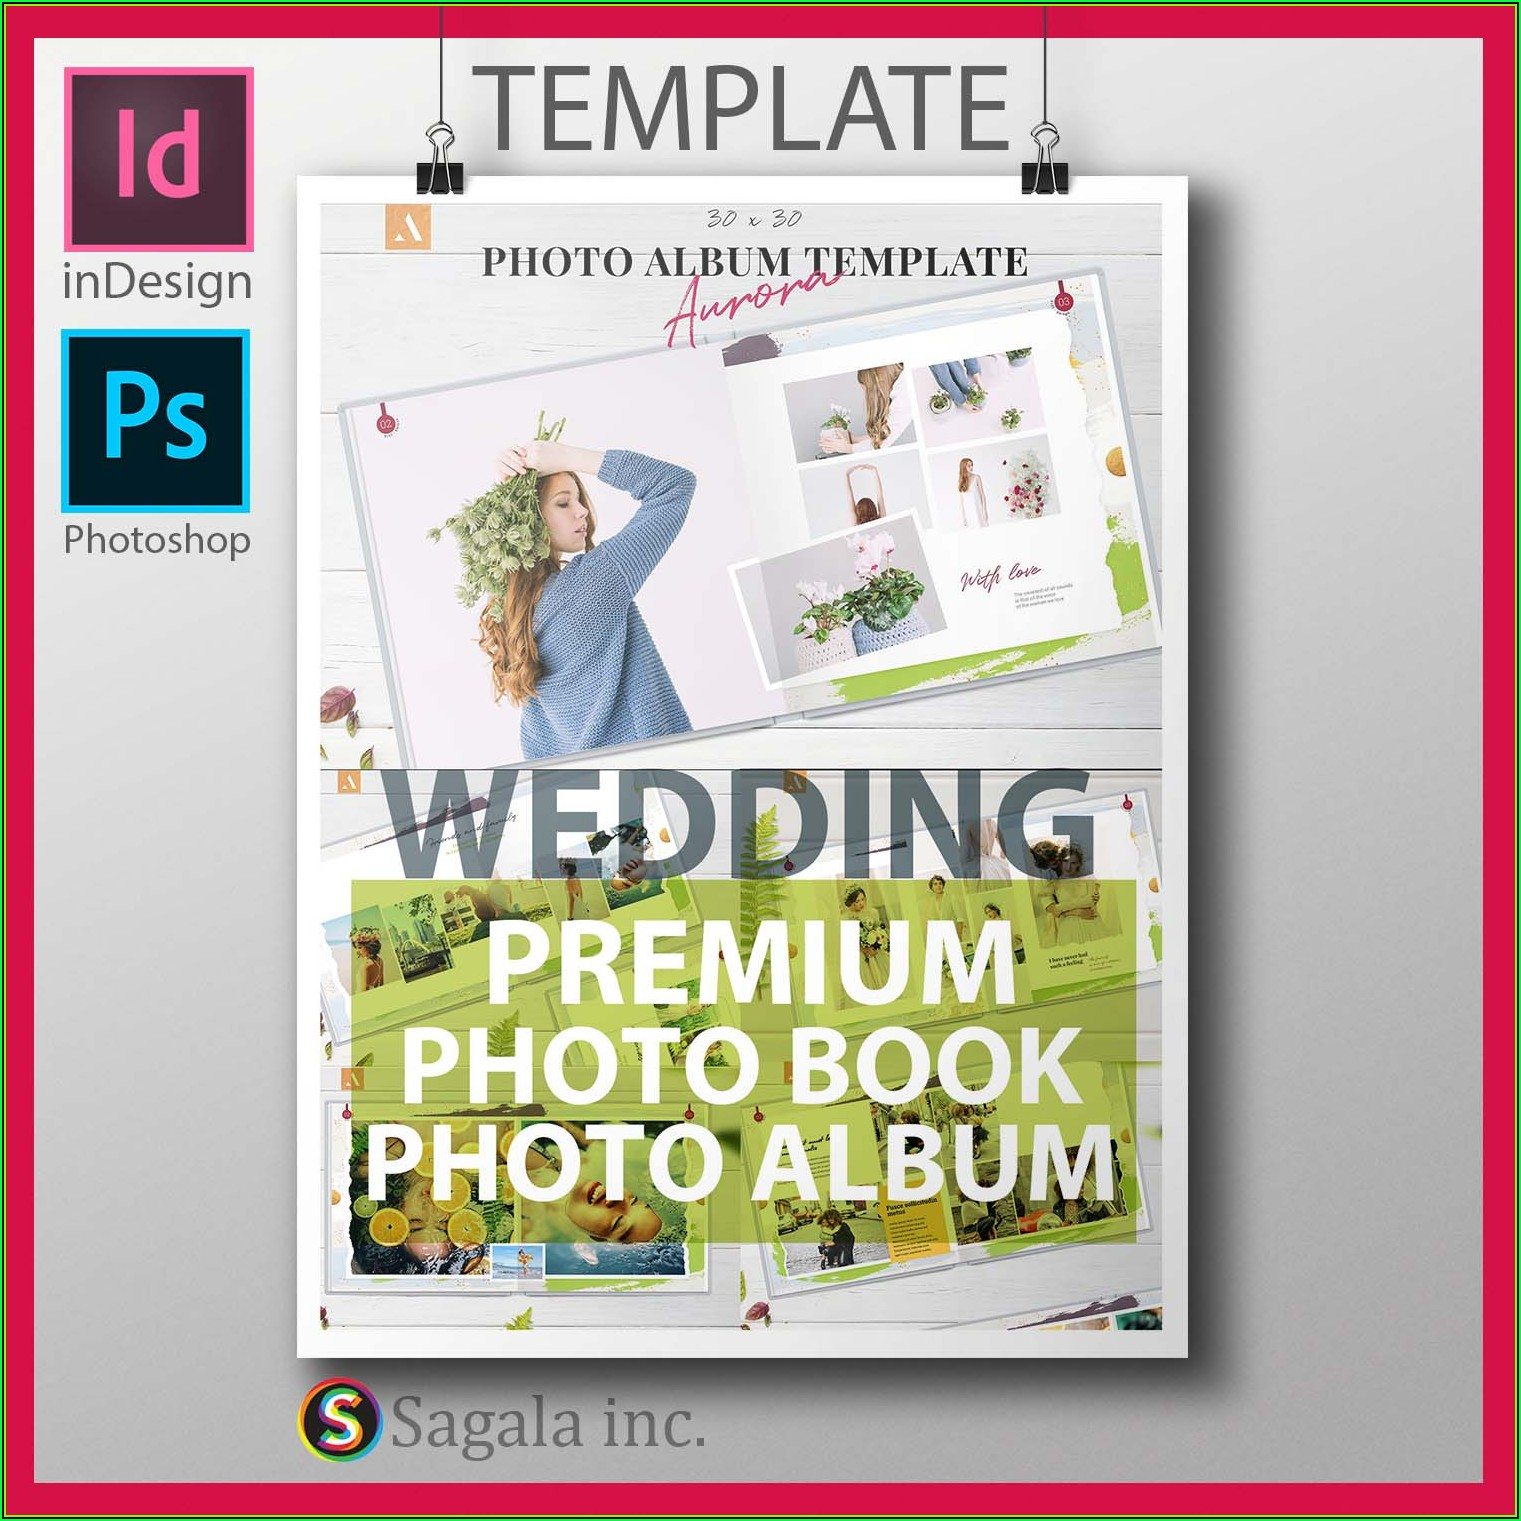 Indesign Photo Album Template